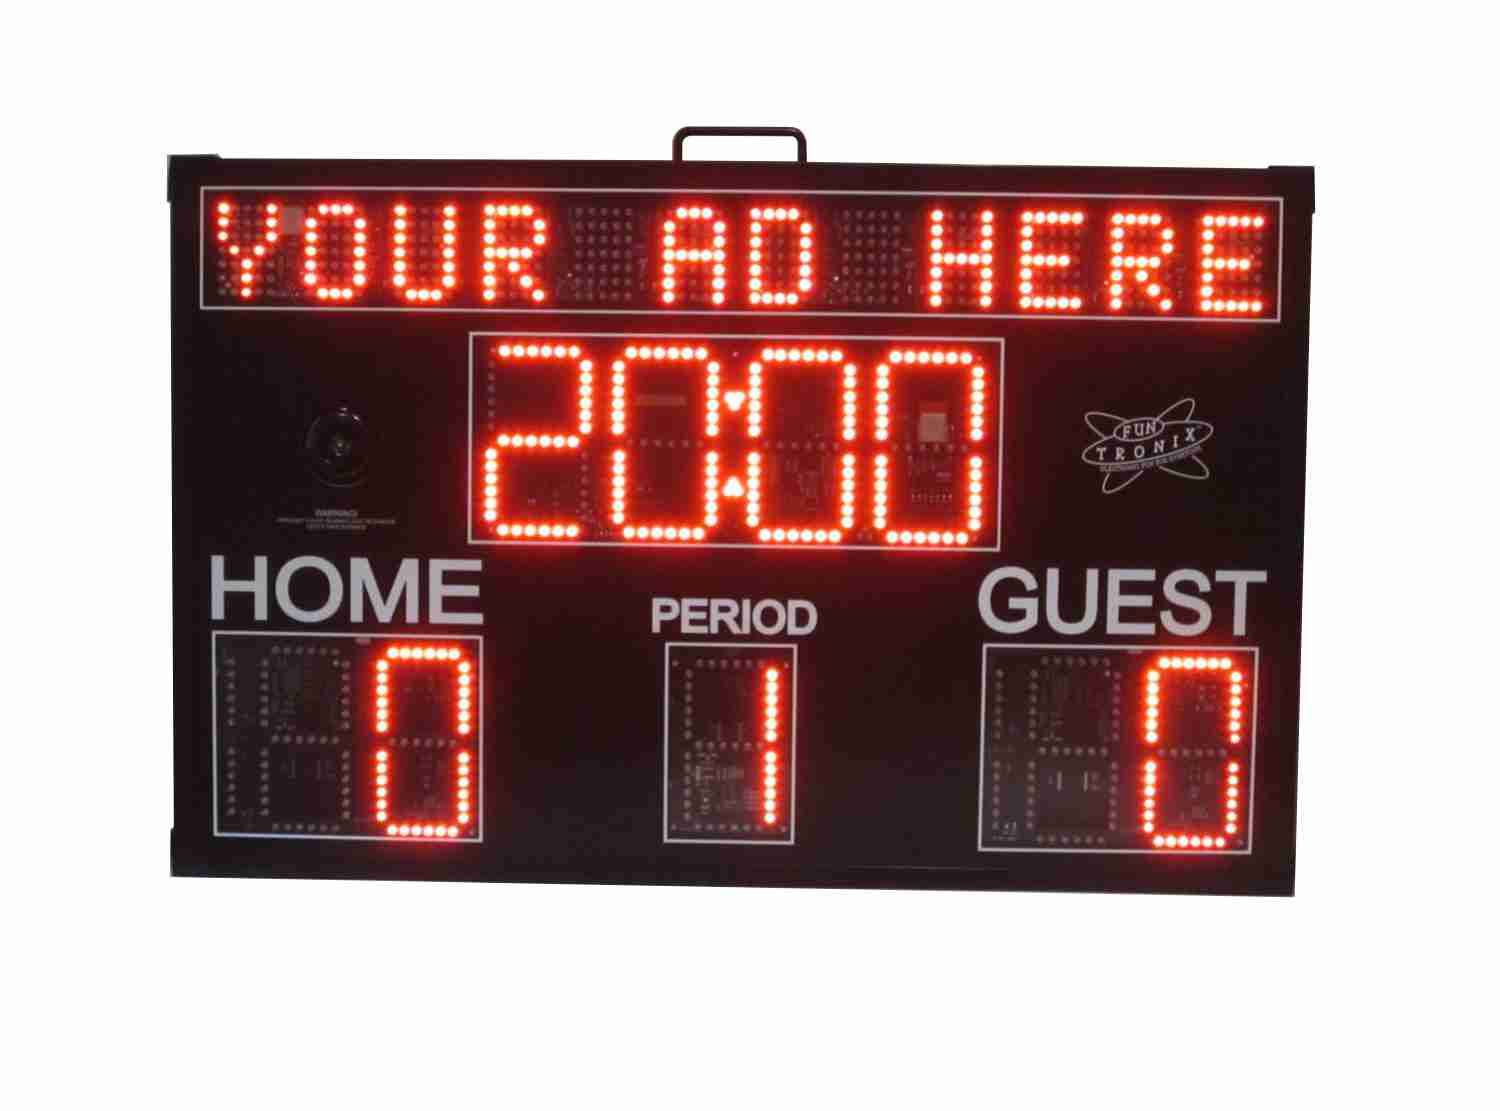 SNT-440 Large Scoreboard with Messaging